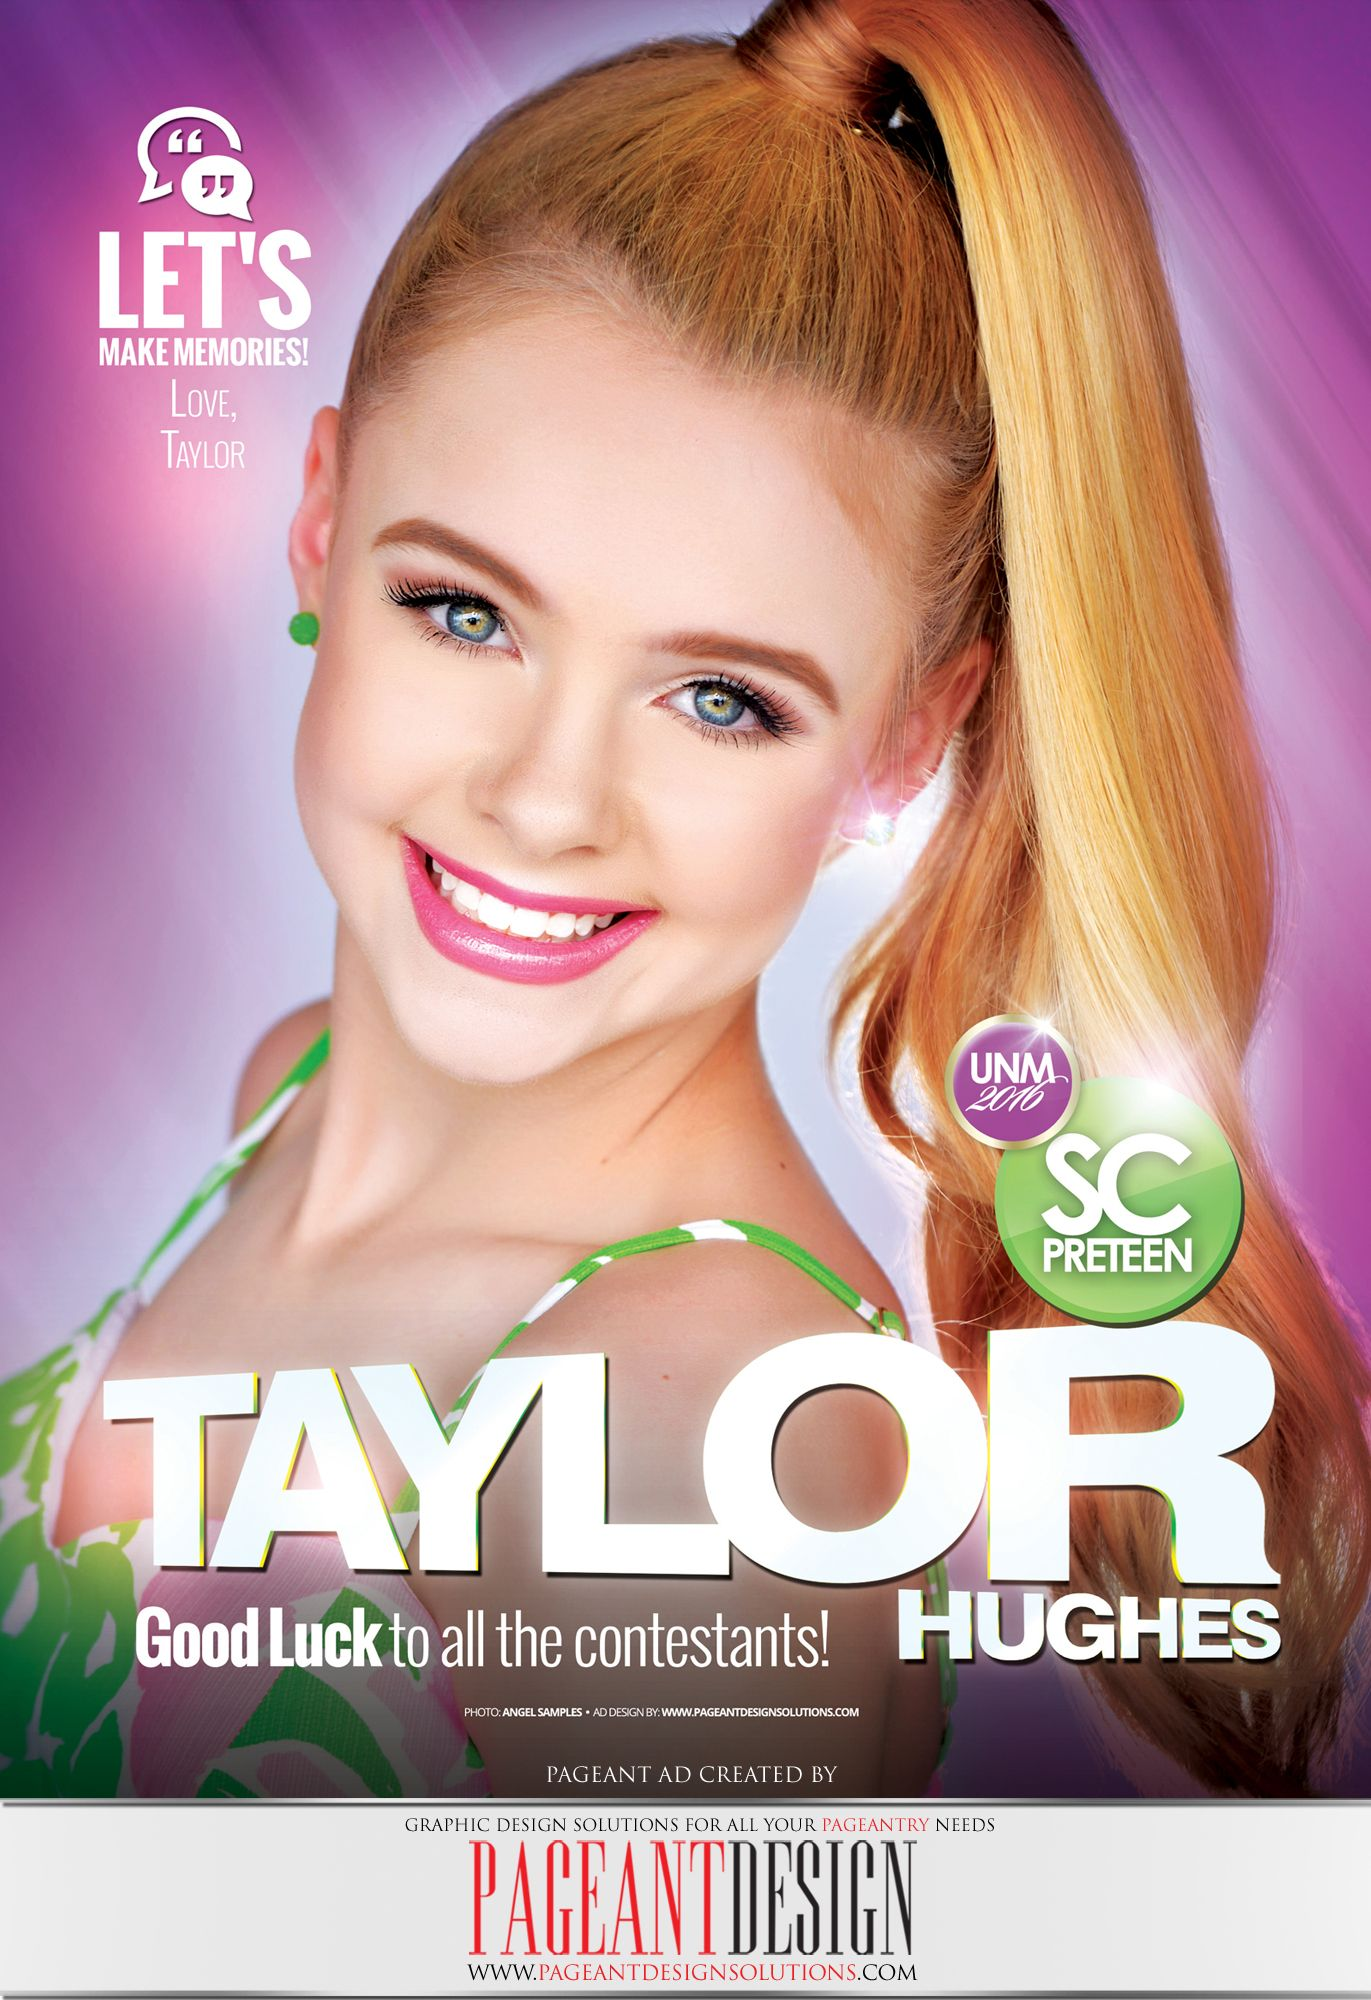 #AWESOMEpageantAD designed for Taylor Hughes for the official UNM 2016 Program Book | GET IN TOUCH if you need an awesome-looking, professionally-designed ad page! | #PageantDesign Graphic design solutions for all your pageantry needs! | For samples, check out: www.pageantdesign... and like us on facebook: www.facebook.com/... | ALL STATES, ALL AGES, ALL PAGEANTS SYSTEMS WELCOME! #PageantAds #AWESOMEpageantADS